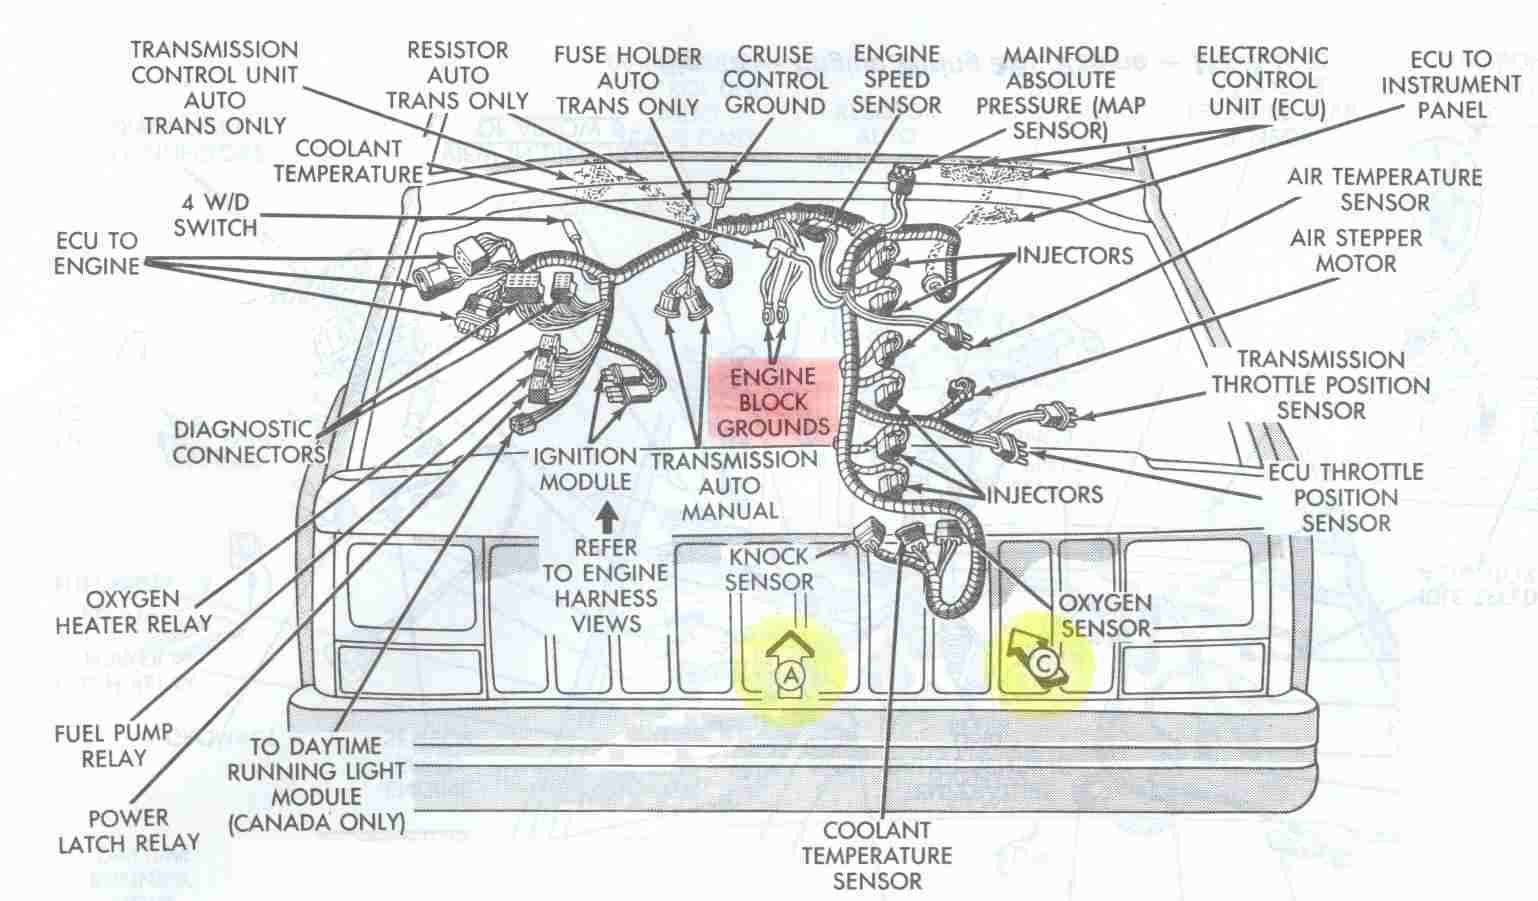 engine bay schematic showing major electrical ground points for 4 0l rh pinterest com Jeep Wiring Harness Diagram Jeep Wrangler AC Wiring Diagram